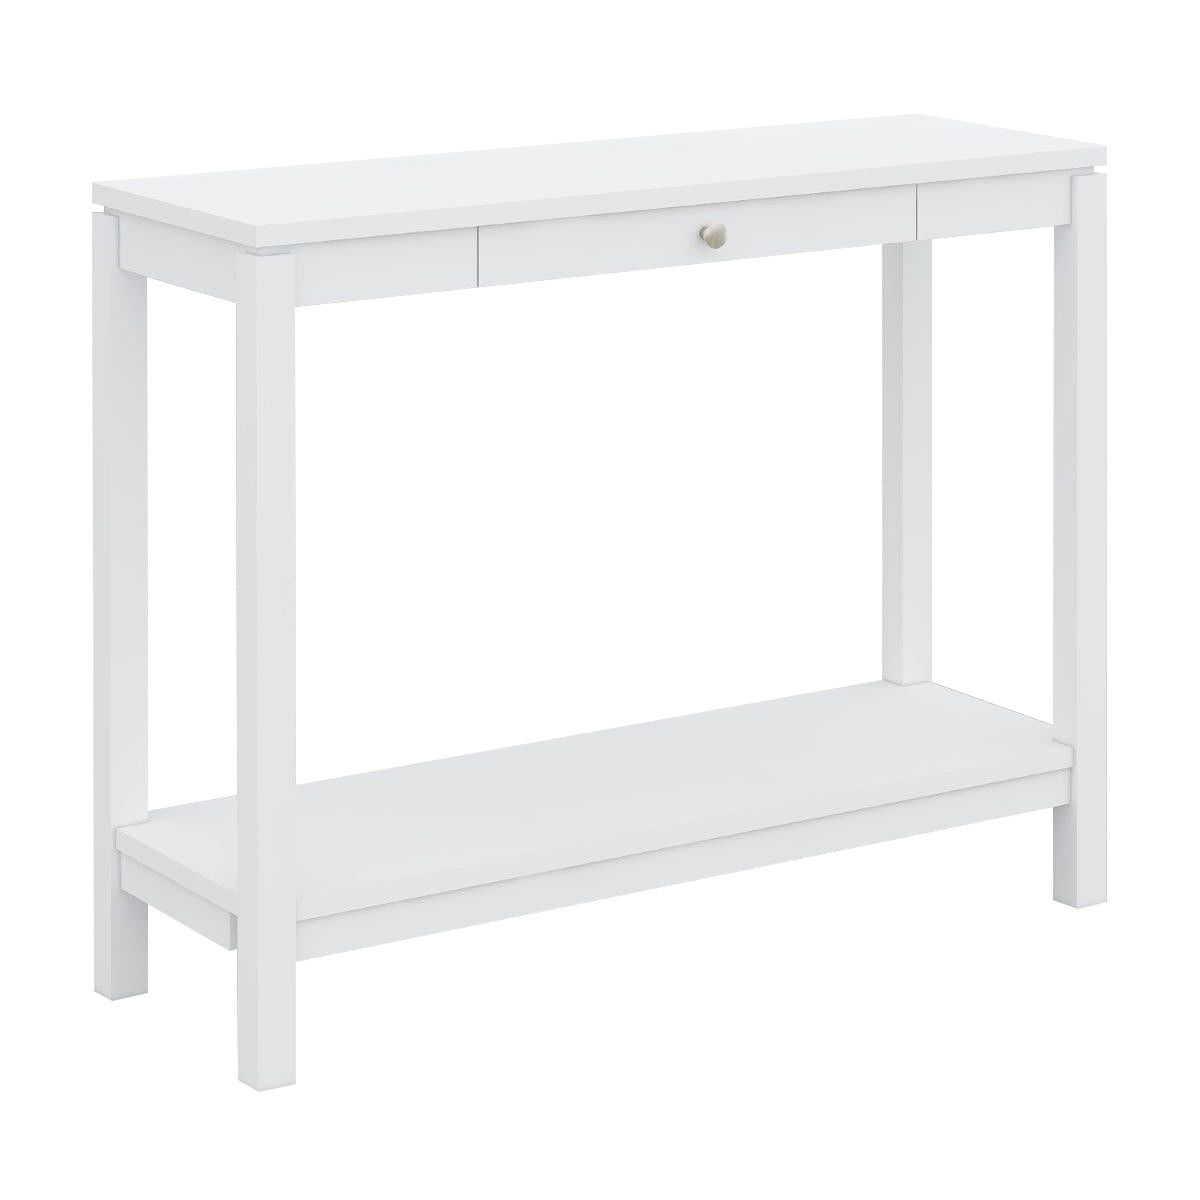 Braque Solid Rubberwood Timber Hall Table, 100cm, White